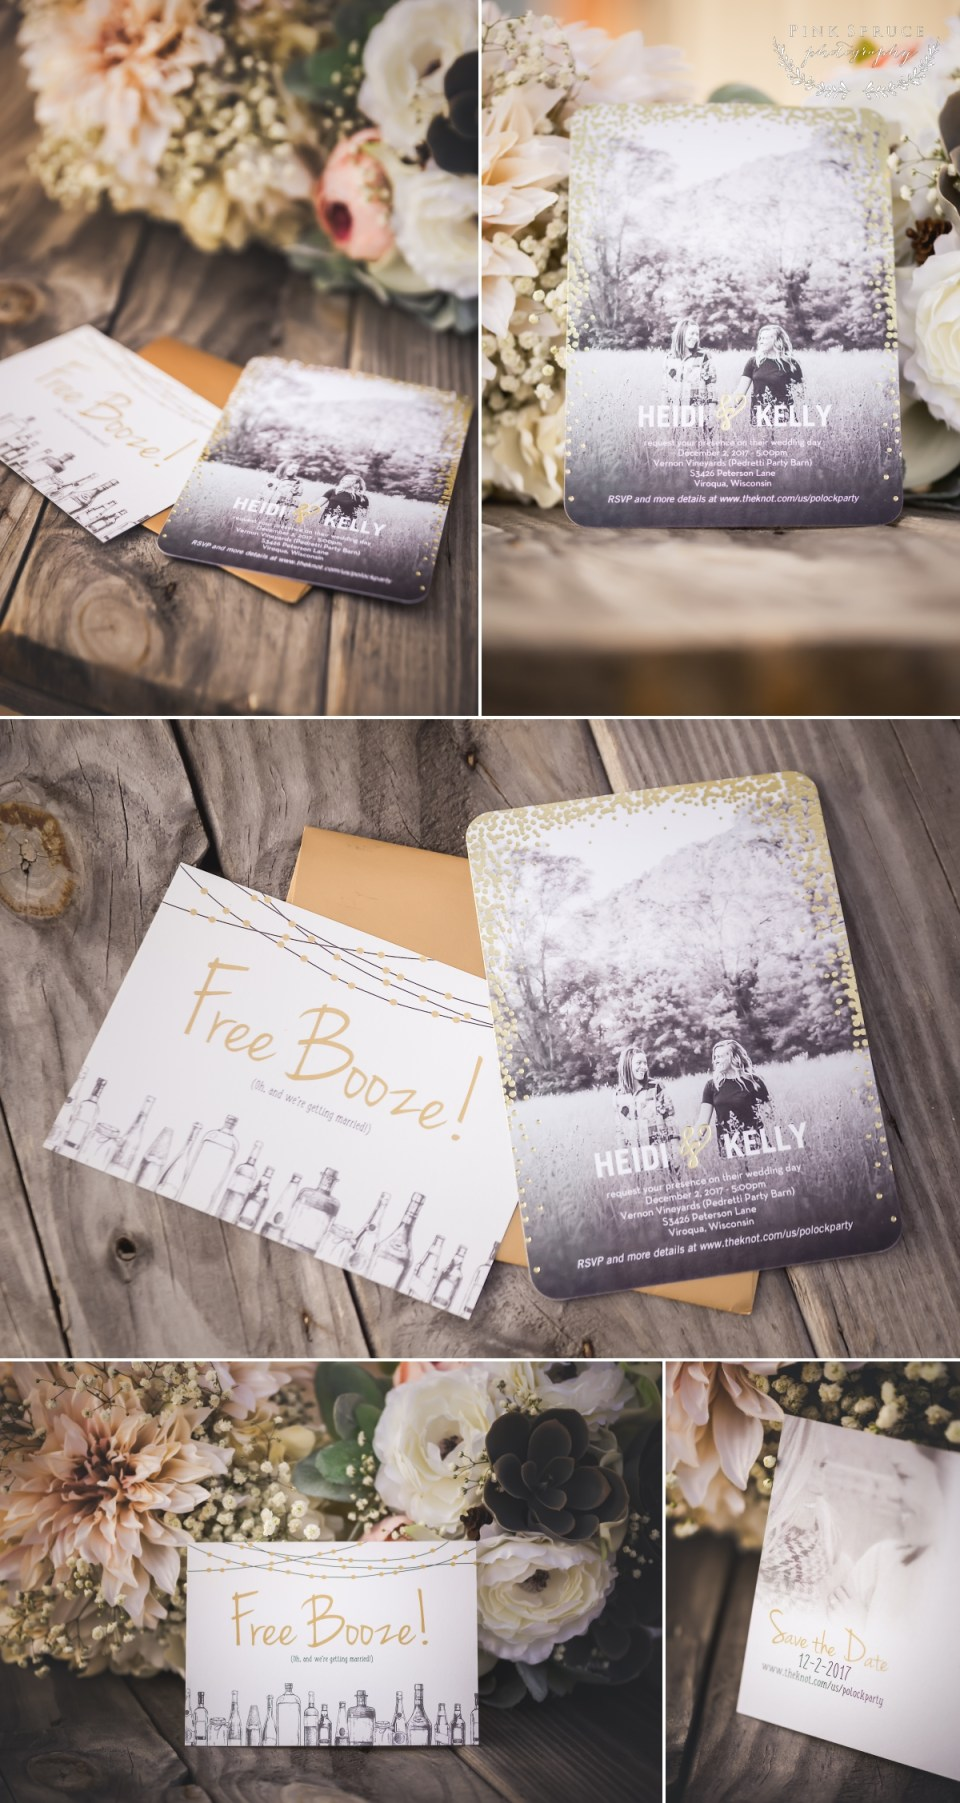 Invitations and Save the Dates for Rustic Winter Wedding at Pedretti's Party Barn, Viroqua, WI | Photography by: Pink Spruce Photography www.pinksprucephotography.com | Lesbian Wedding, Same Sex Wedding, Wisconsin Wedding